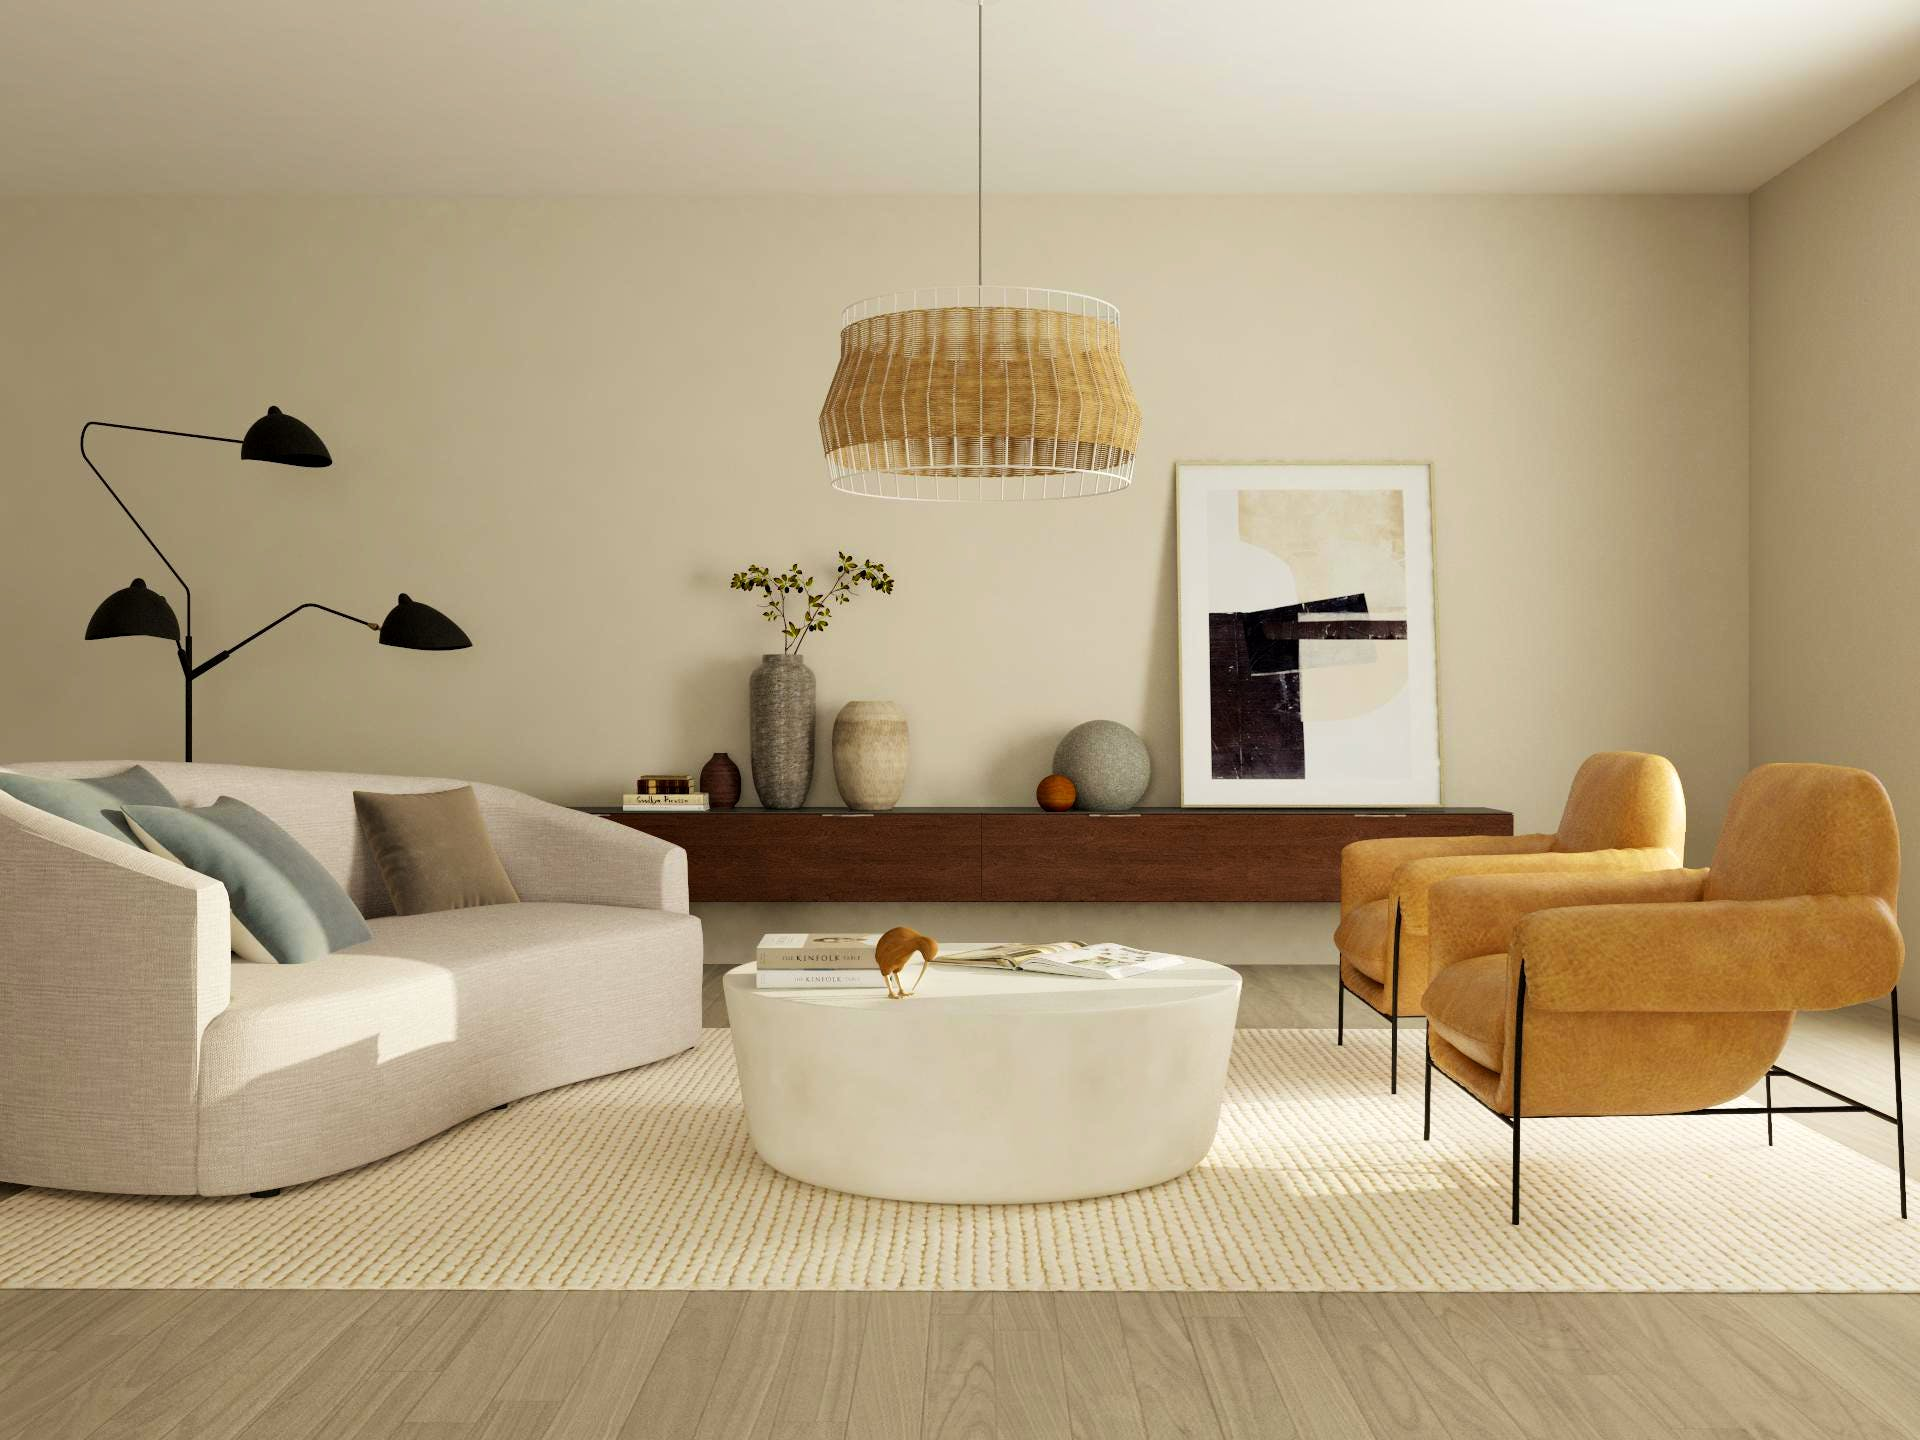 Minimalist style off-white living room